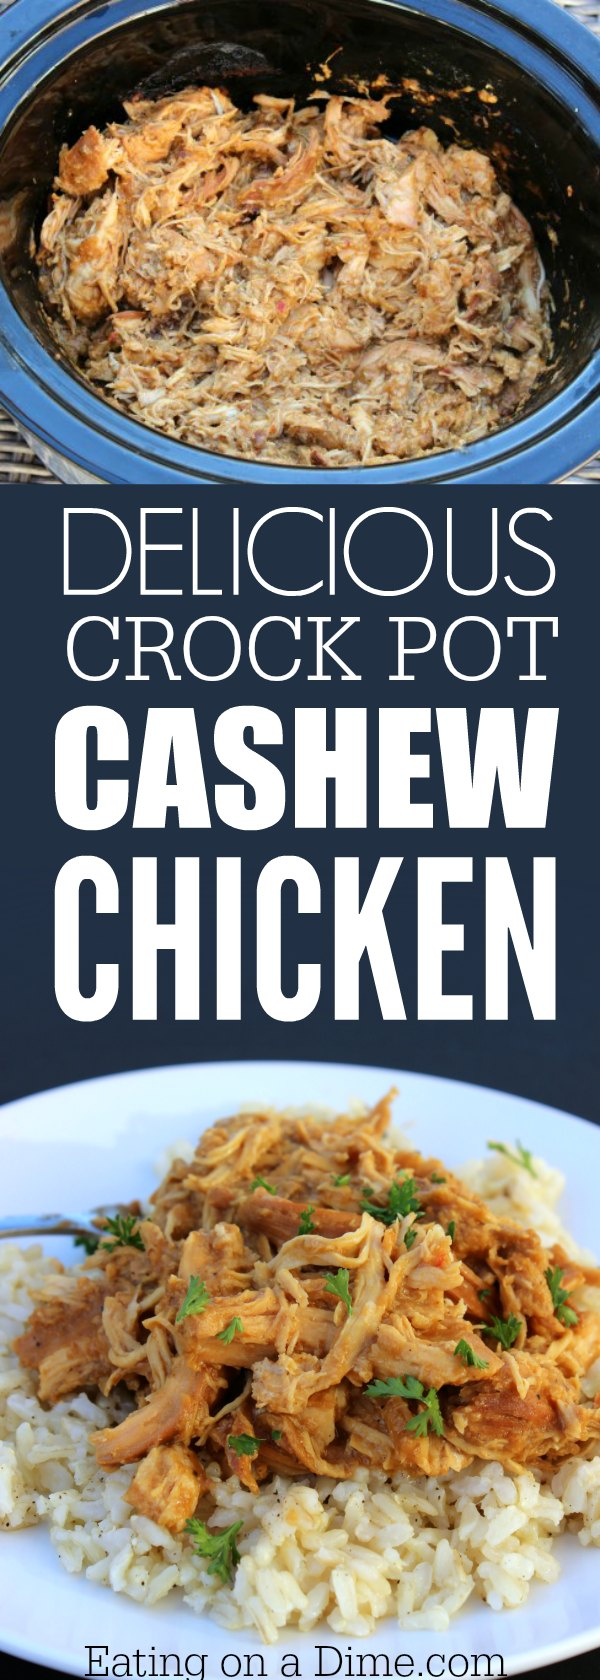 Need easy crock pot recipes? Make this slow cooker cashew chicken. It is packed with flavor and is an easy dinner idea. Make this chicken cashew recipe.